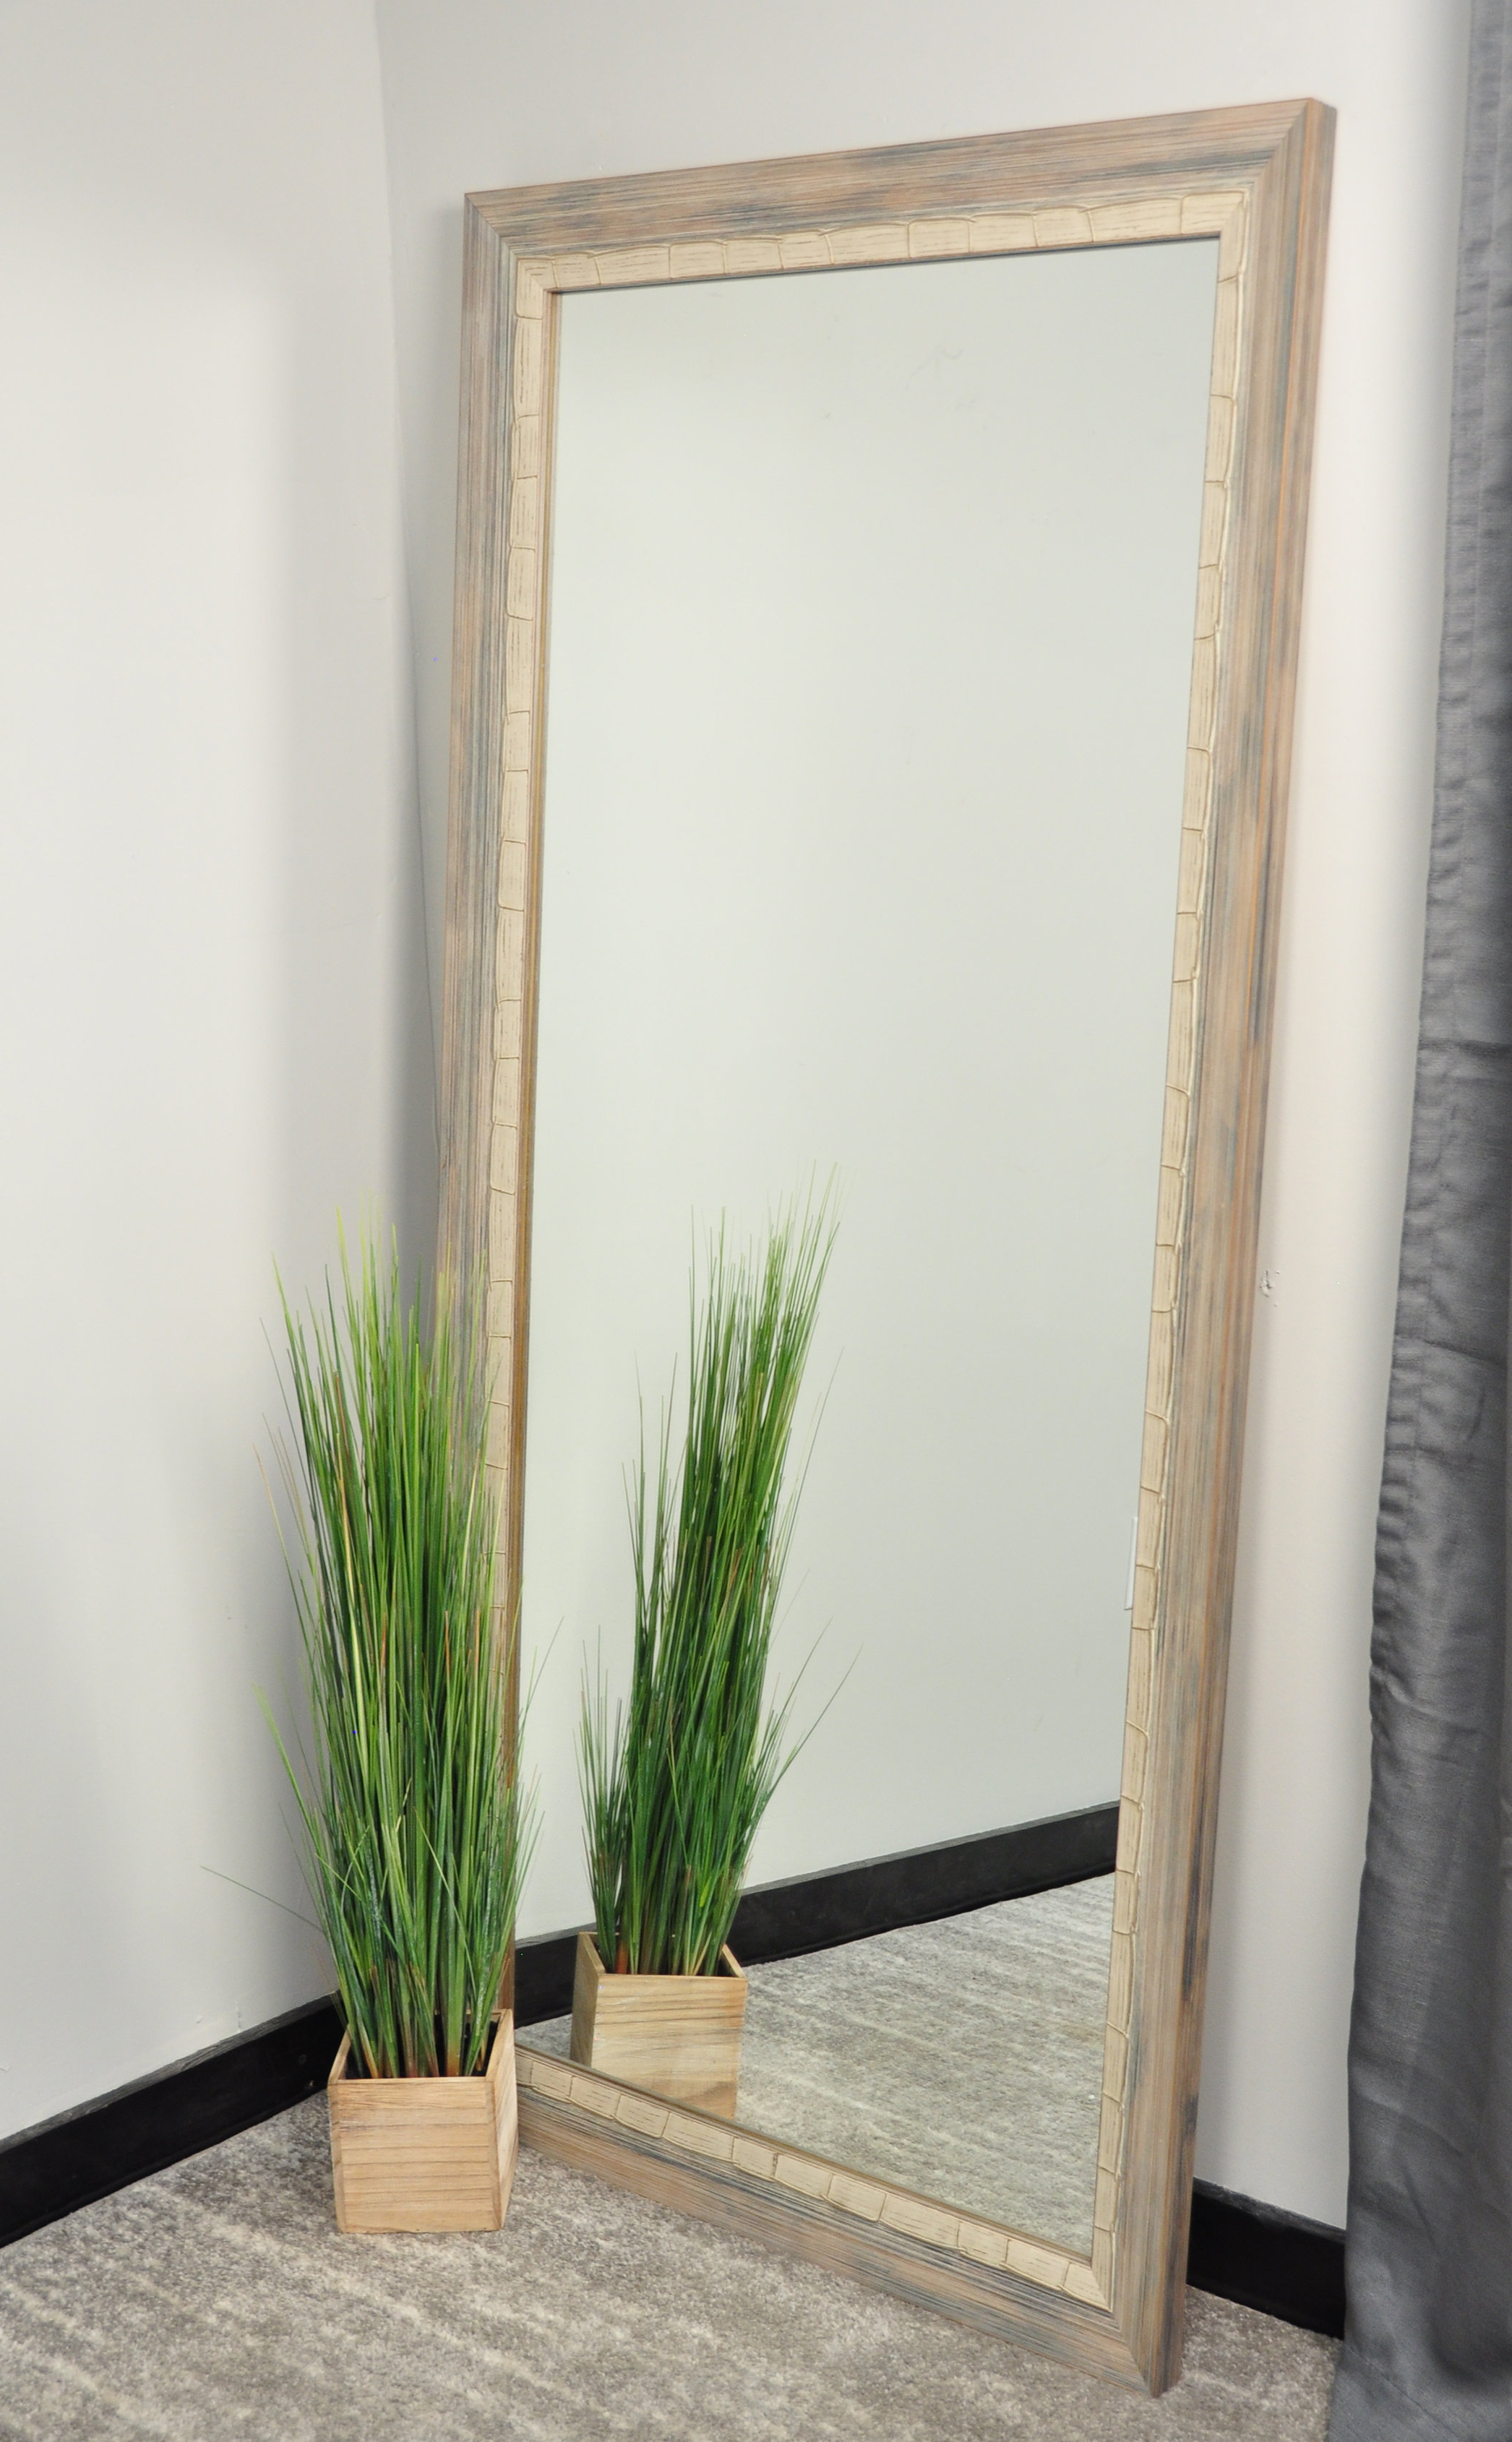 Brandt Works Llc Weathered Beach Modern & Contemporary Wall Mirror Intended For Most Recently Released Leaning Wall Mirrors (View 5 of 20)